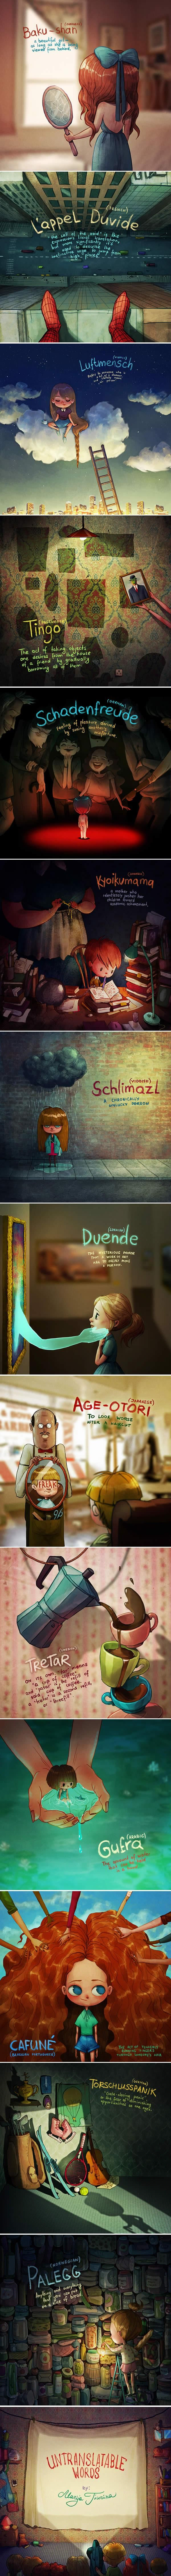 14 Untranslatable Words Explained By Charming Illustrations (By Marija Tiurina)